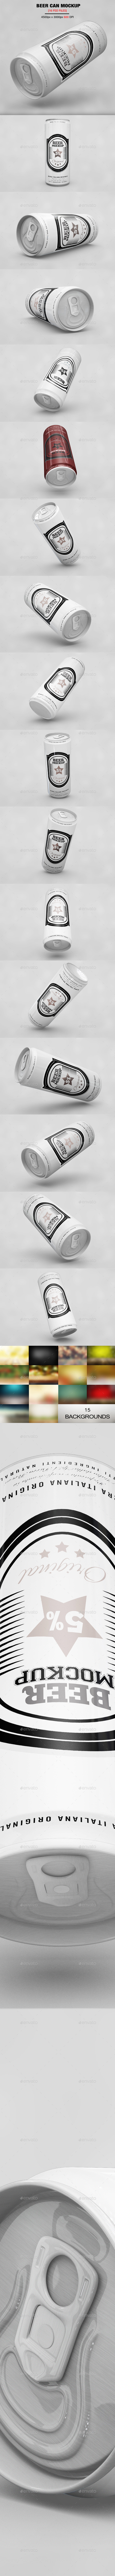 Beer Can MockUp - Product Mock-Ups Graphics